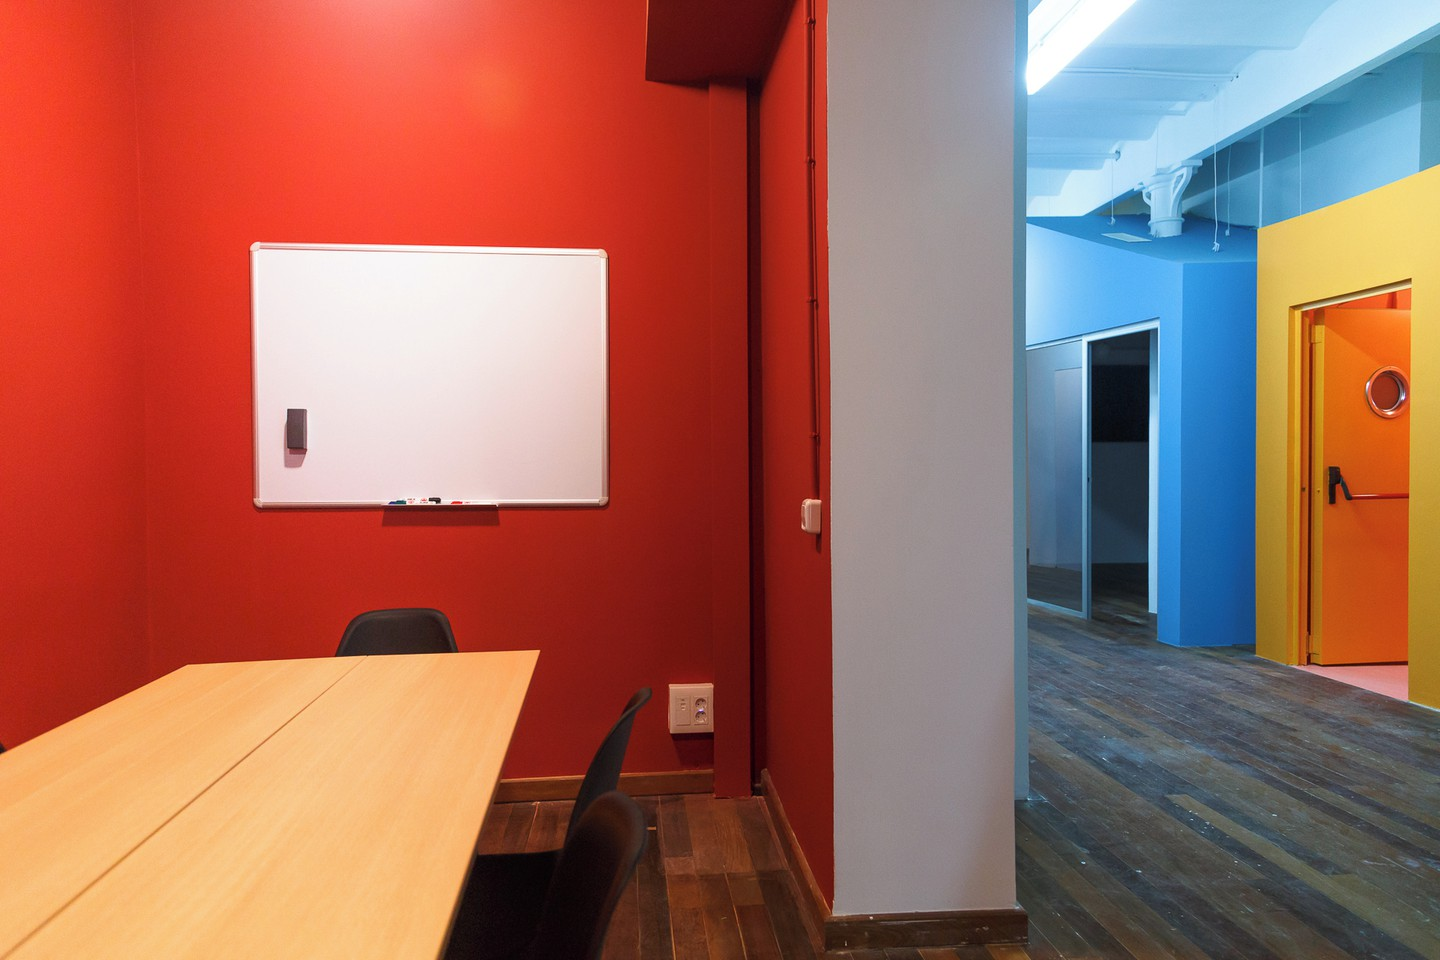 Barcelona training rooms Meetingraum CREC Coworking Eixample -Meeting Room Moulin Rouge image 3